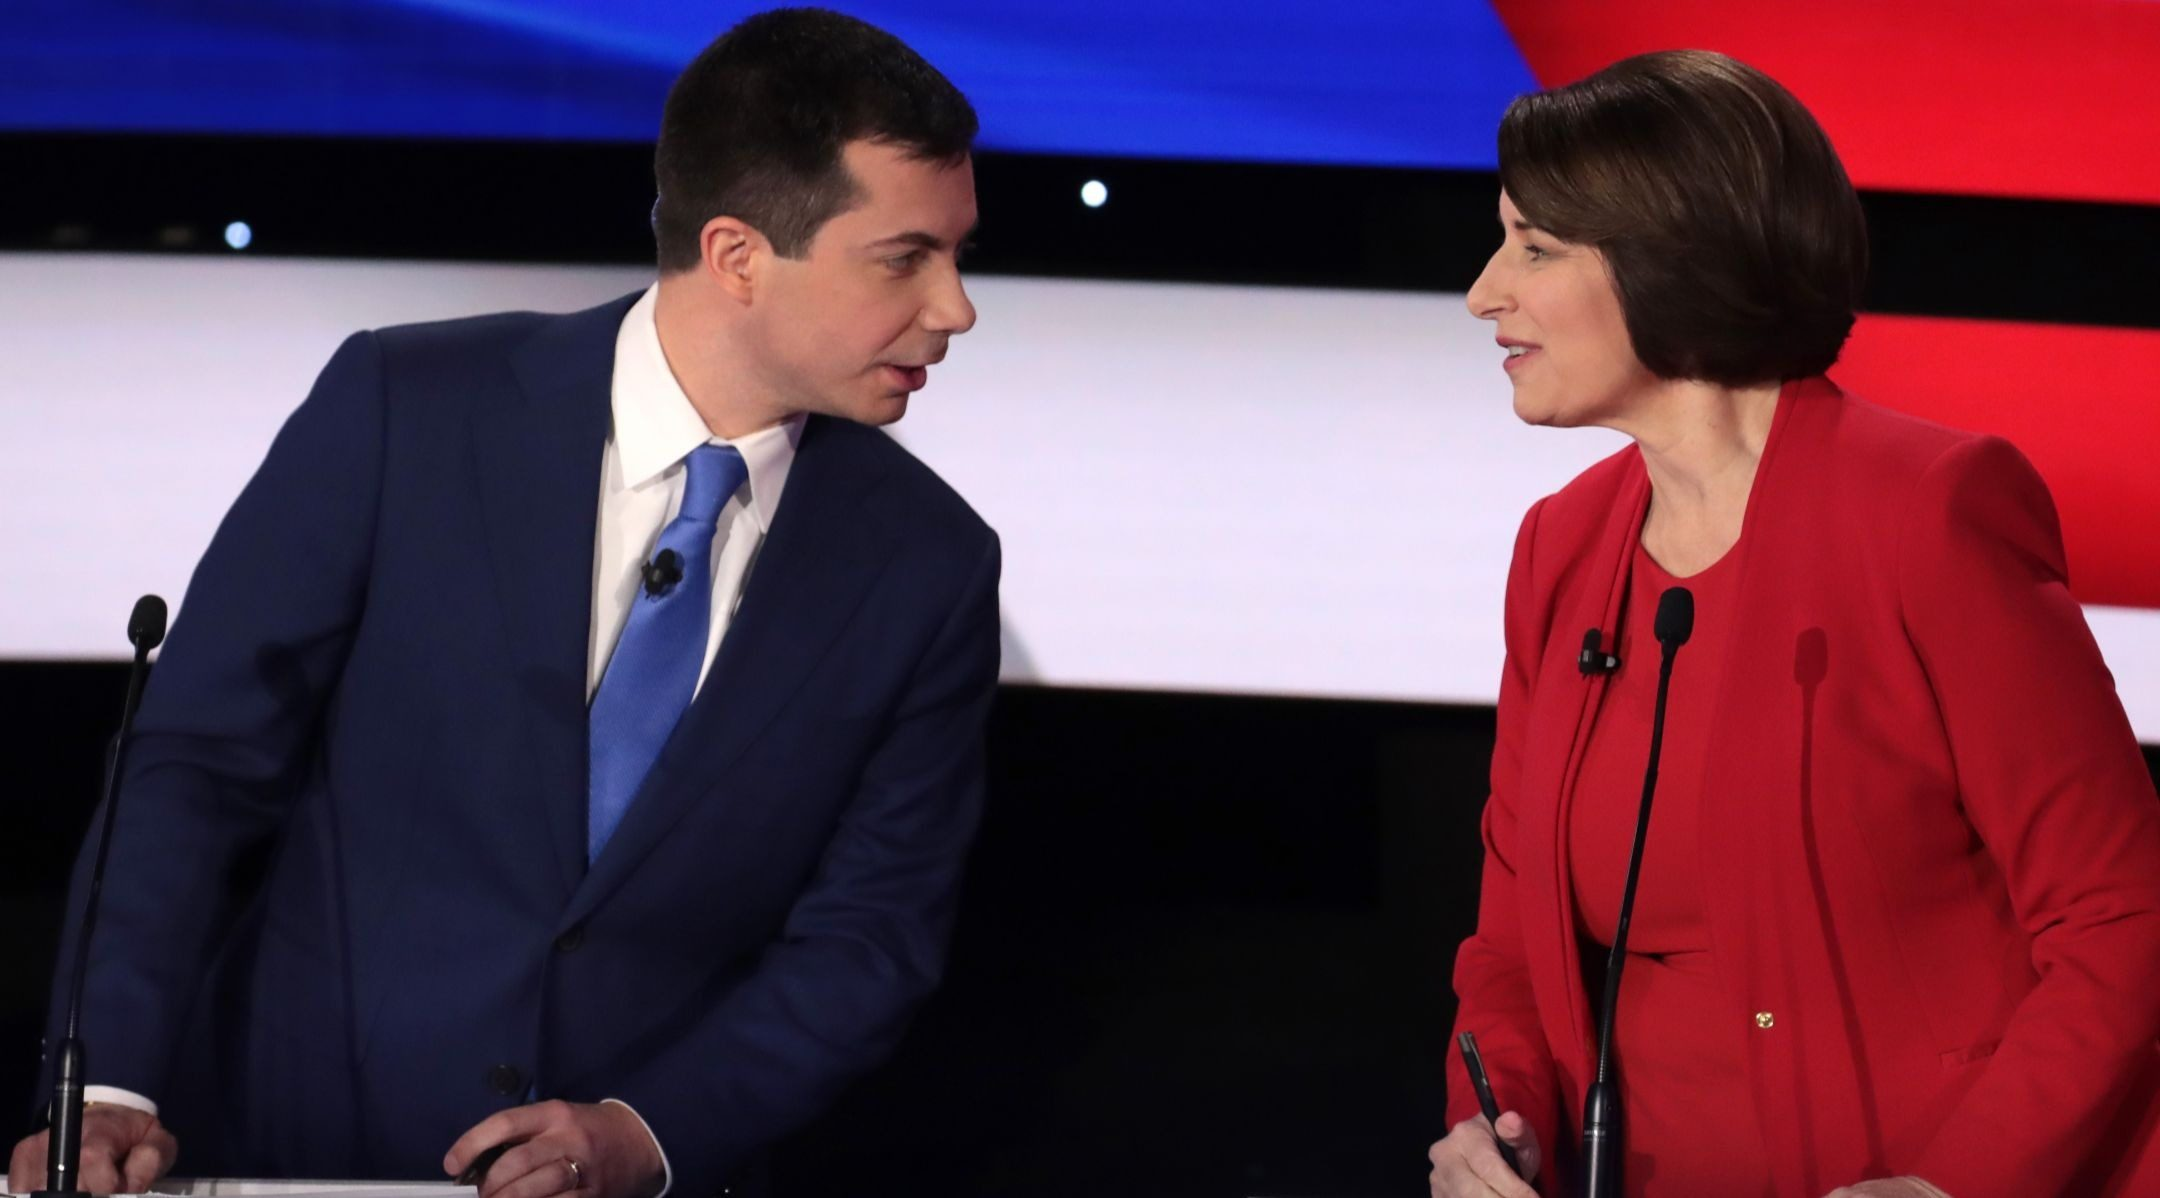 Sen. Amy Klobuchar (D-MN) and former South Bend, Indiana Mayor Pete Buttigieg speak during the Democratic presidential primary debate at Drake University in Des Moines, Iowa on January 14, 2020.  (JTA/Scott Olson/Getty Images)